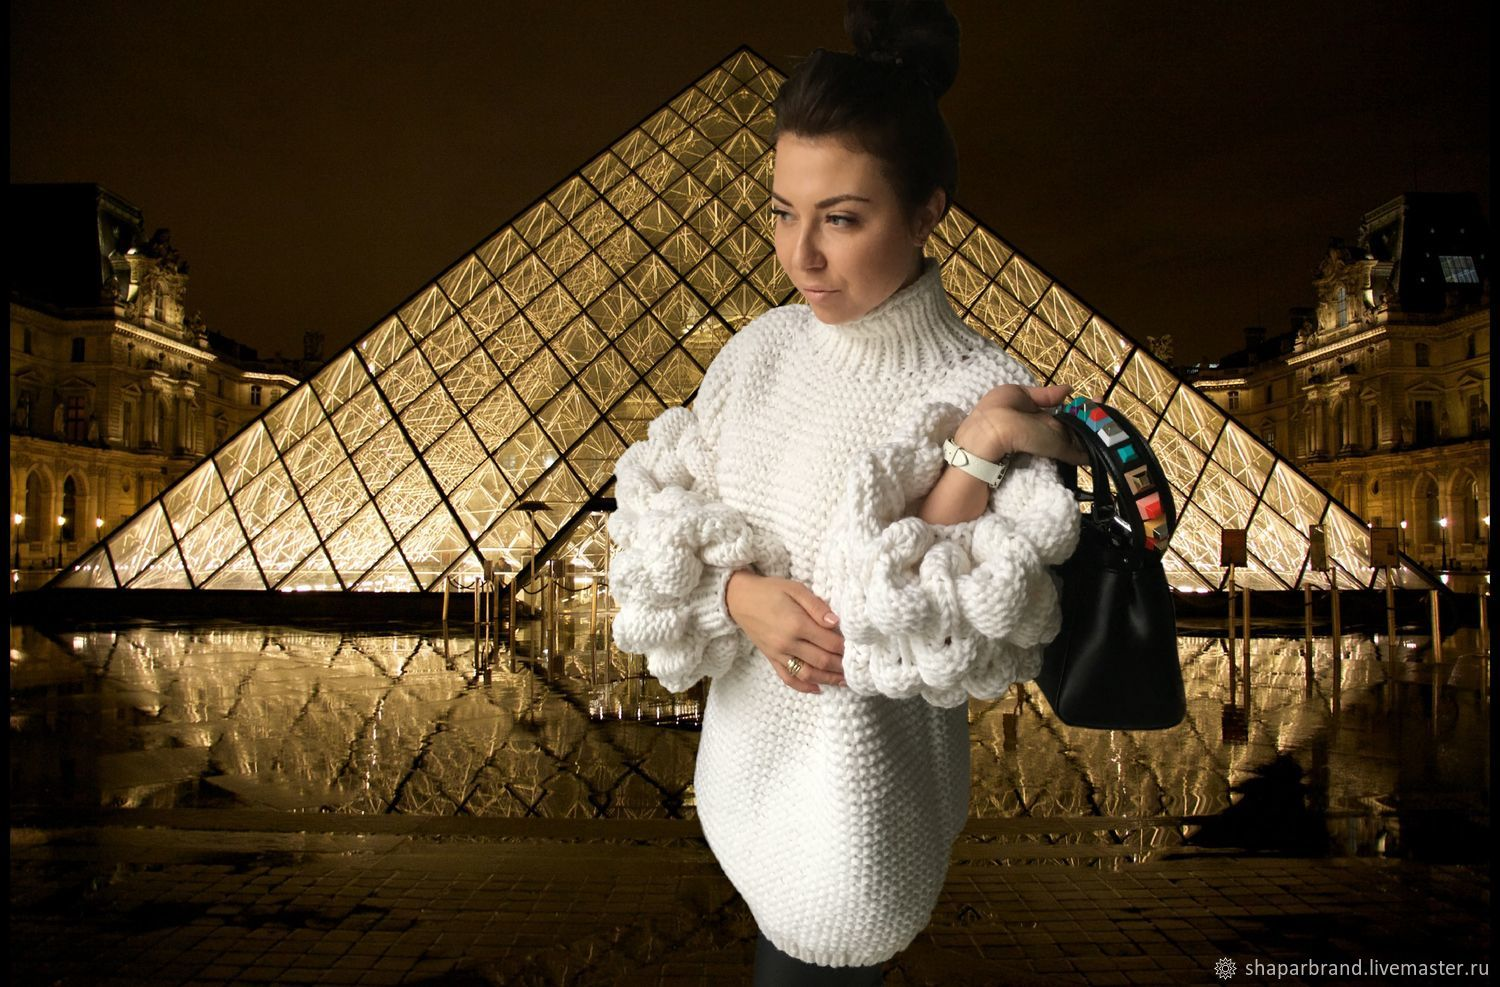 At pictures of beautiful women's sweater with oversized sleeves from ShaparBrand. Stylish sweater.